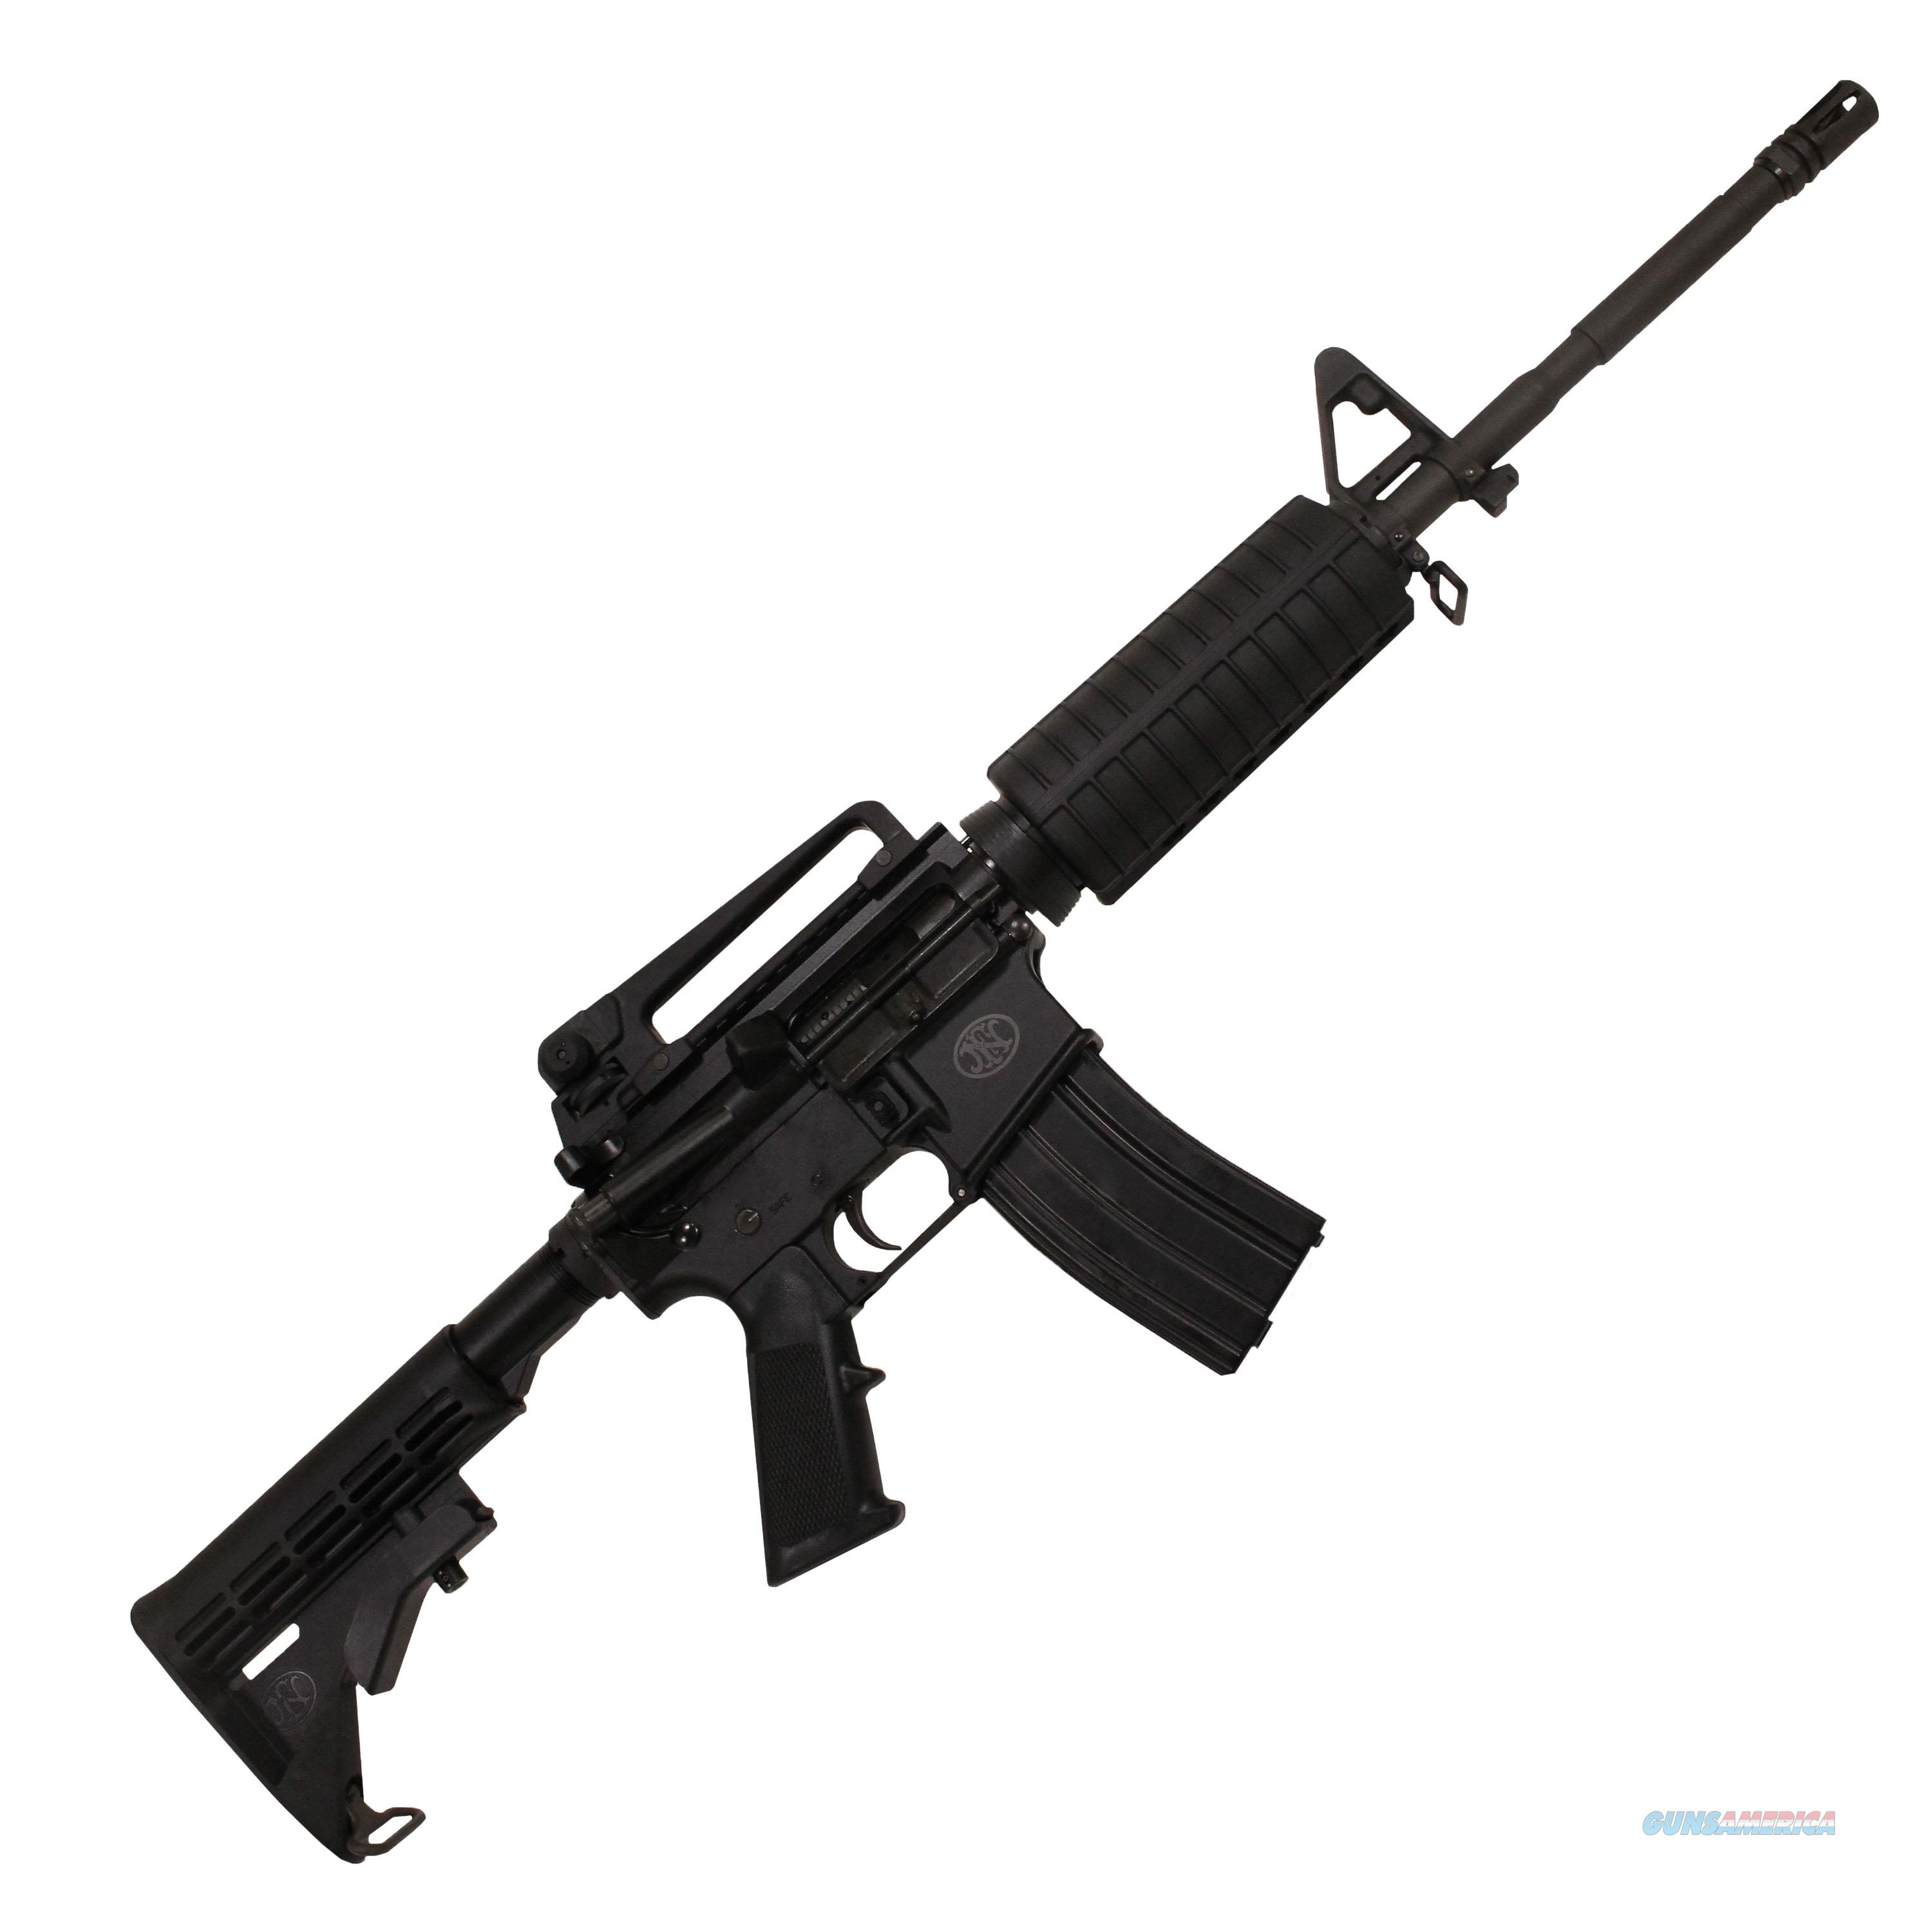 Fn Manufacturing Fn15 Rifle 36302  Guns > Rifles > F Misc Rifles